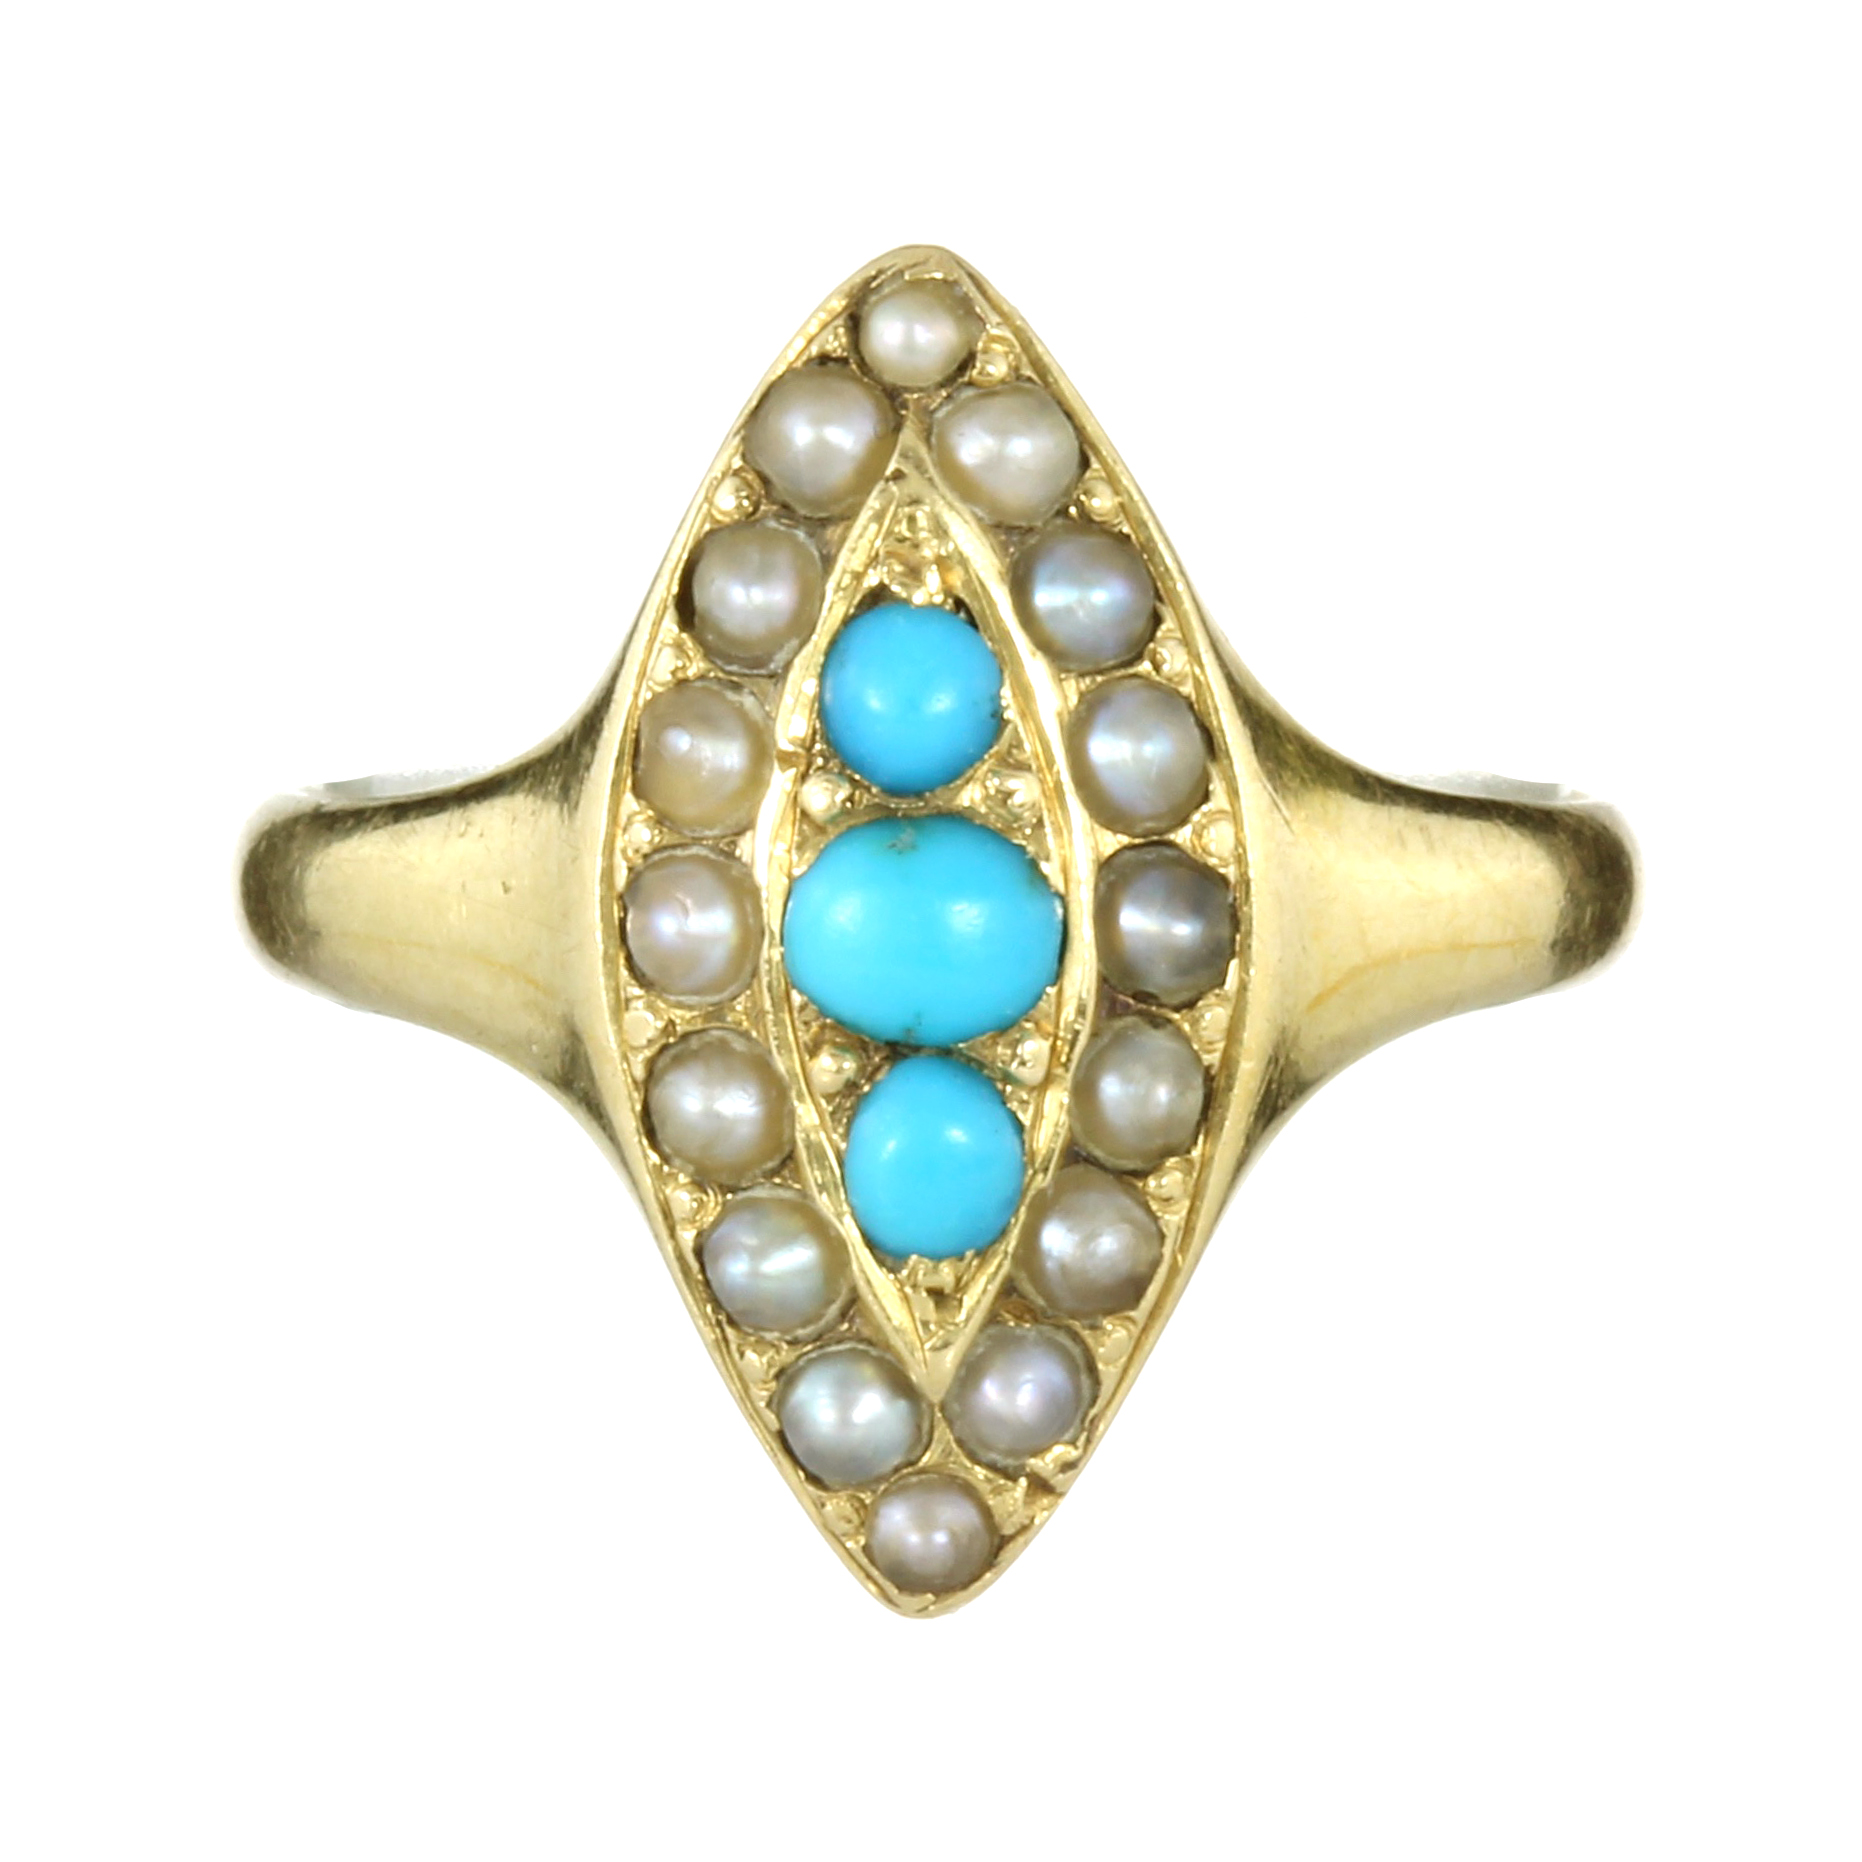 AN ANTIQUE TURQUOISE AND PEARL DRESS RING in high carat yellow gold set with a trio of turquoise